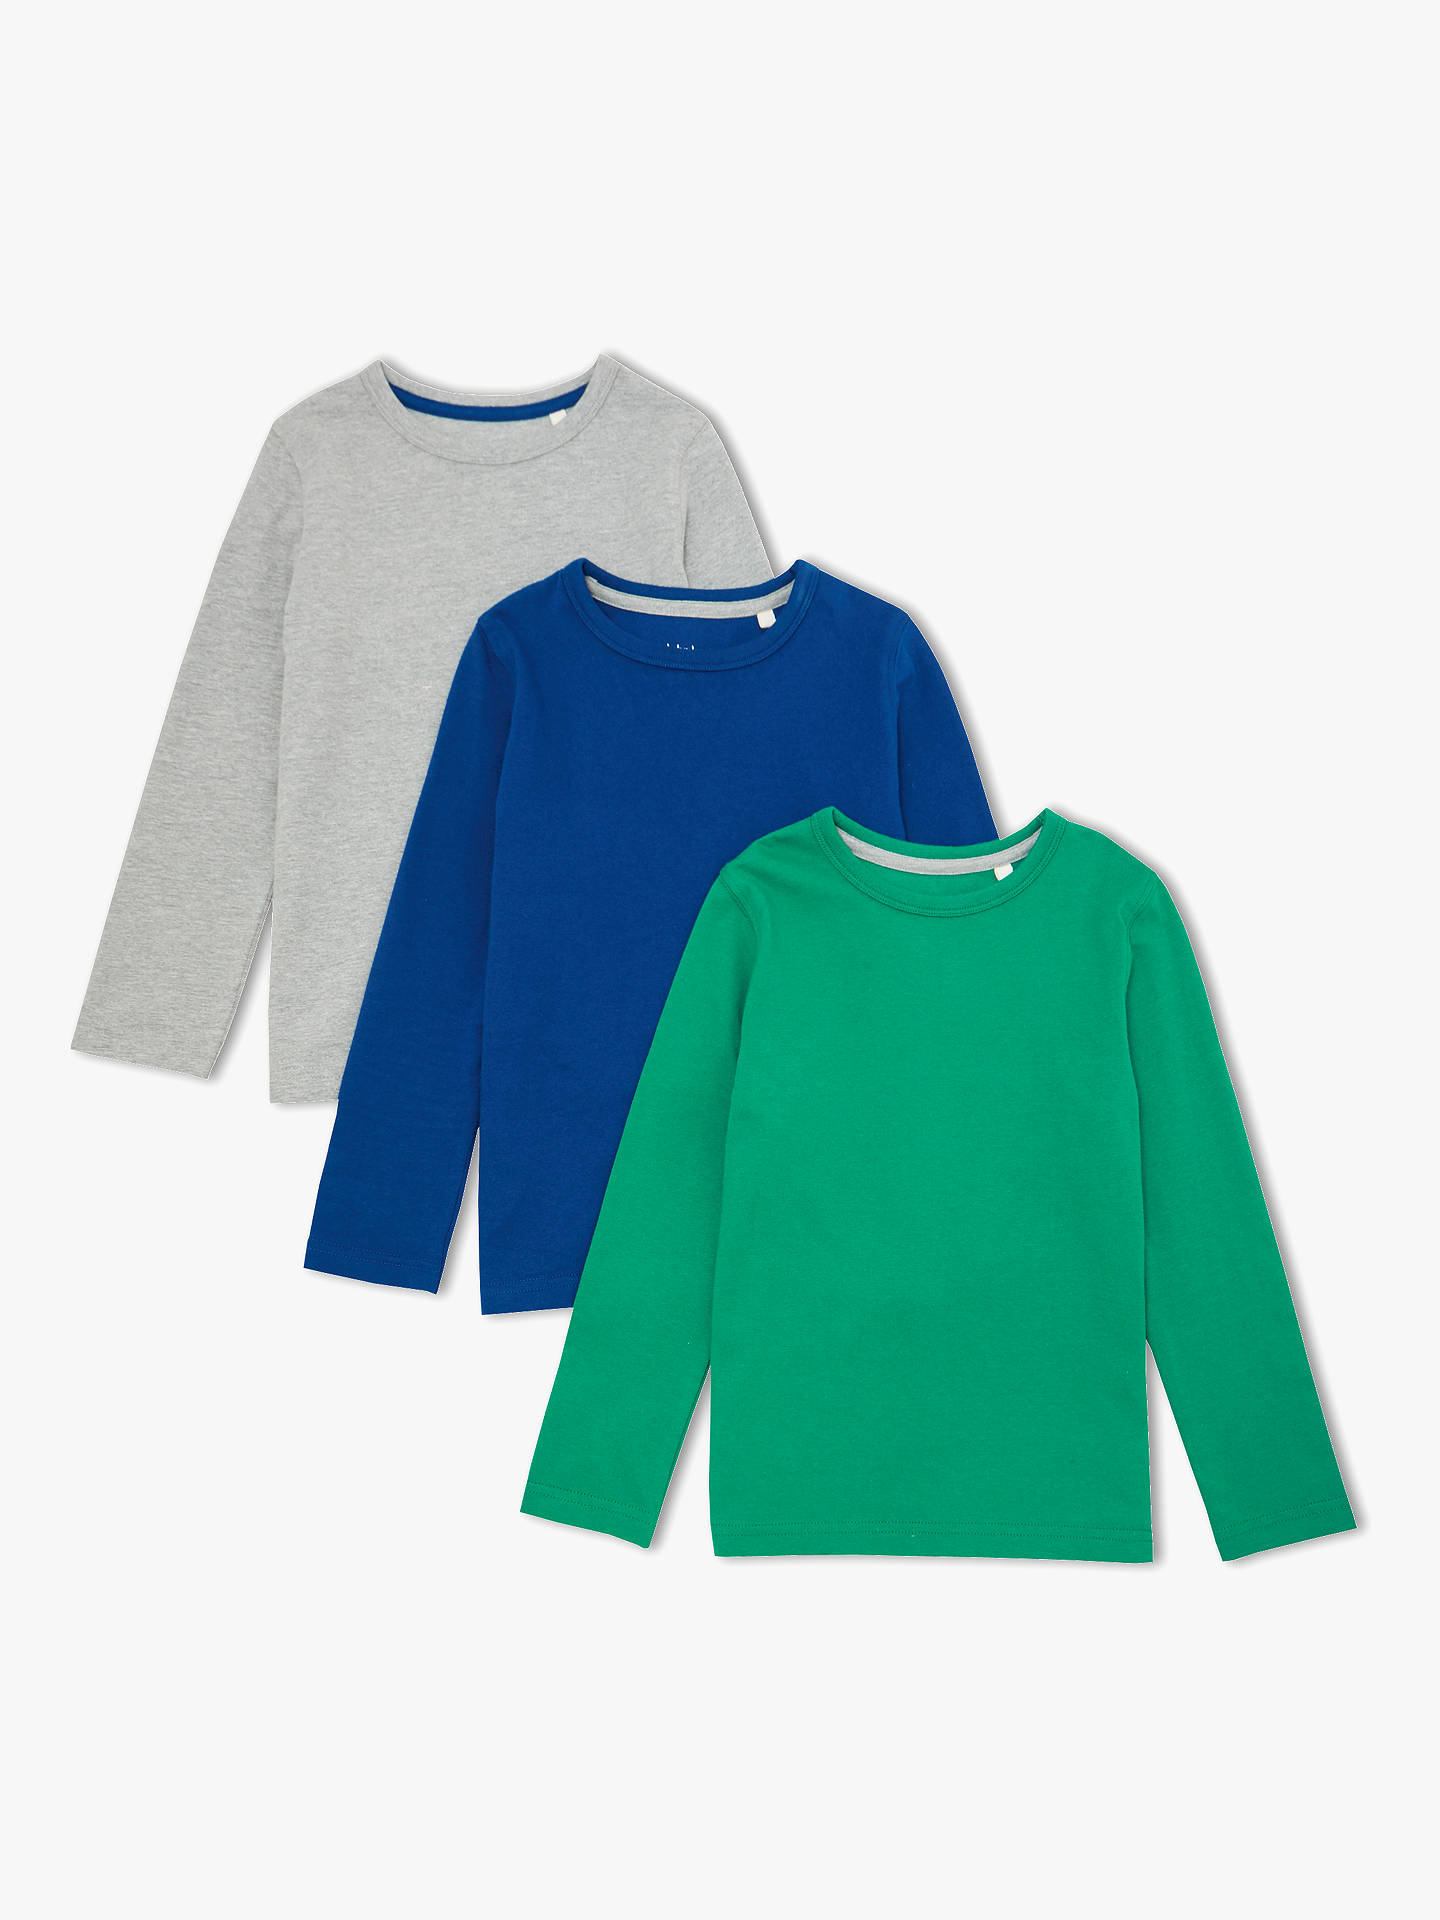 b31bfb80d1b2 John Lewis & Partners Boys' Cotton Long Sleeve Tops, Pack of 3, Blue ...